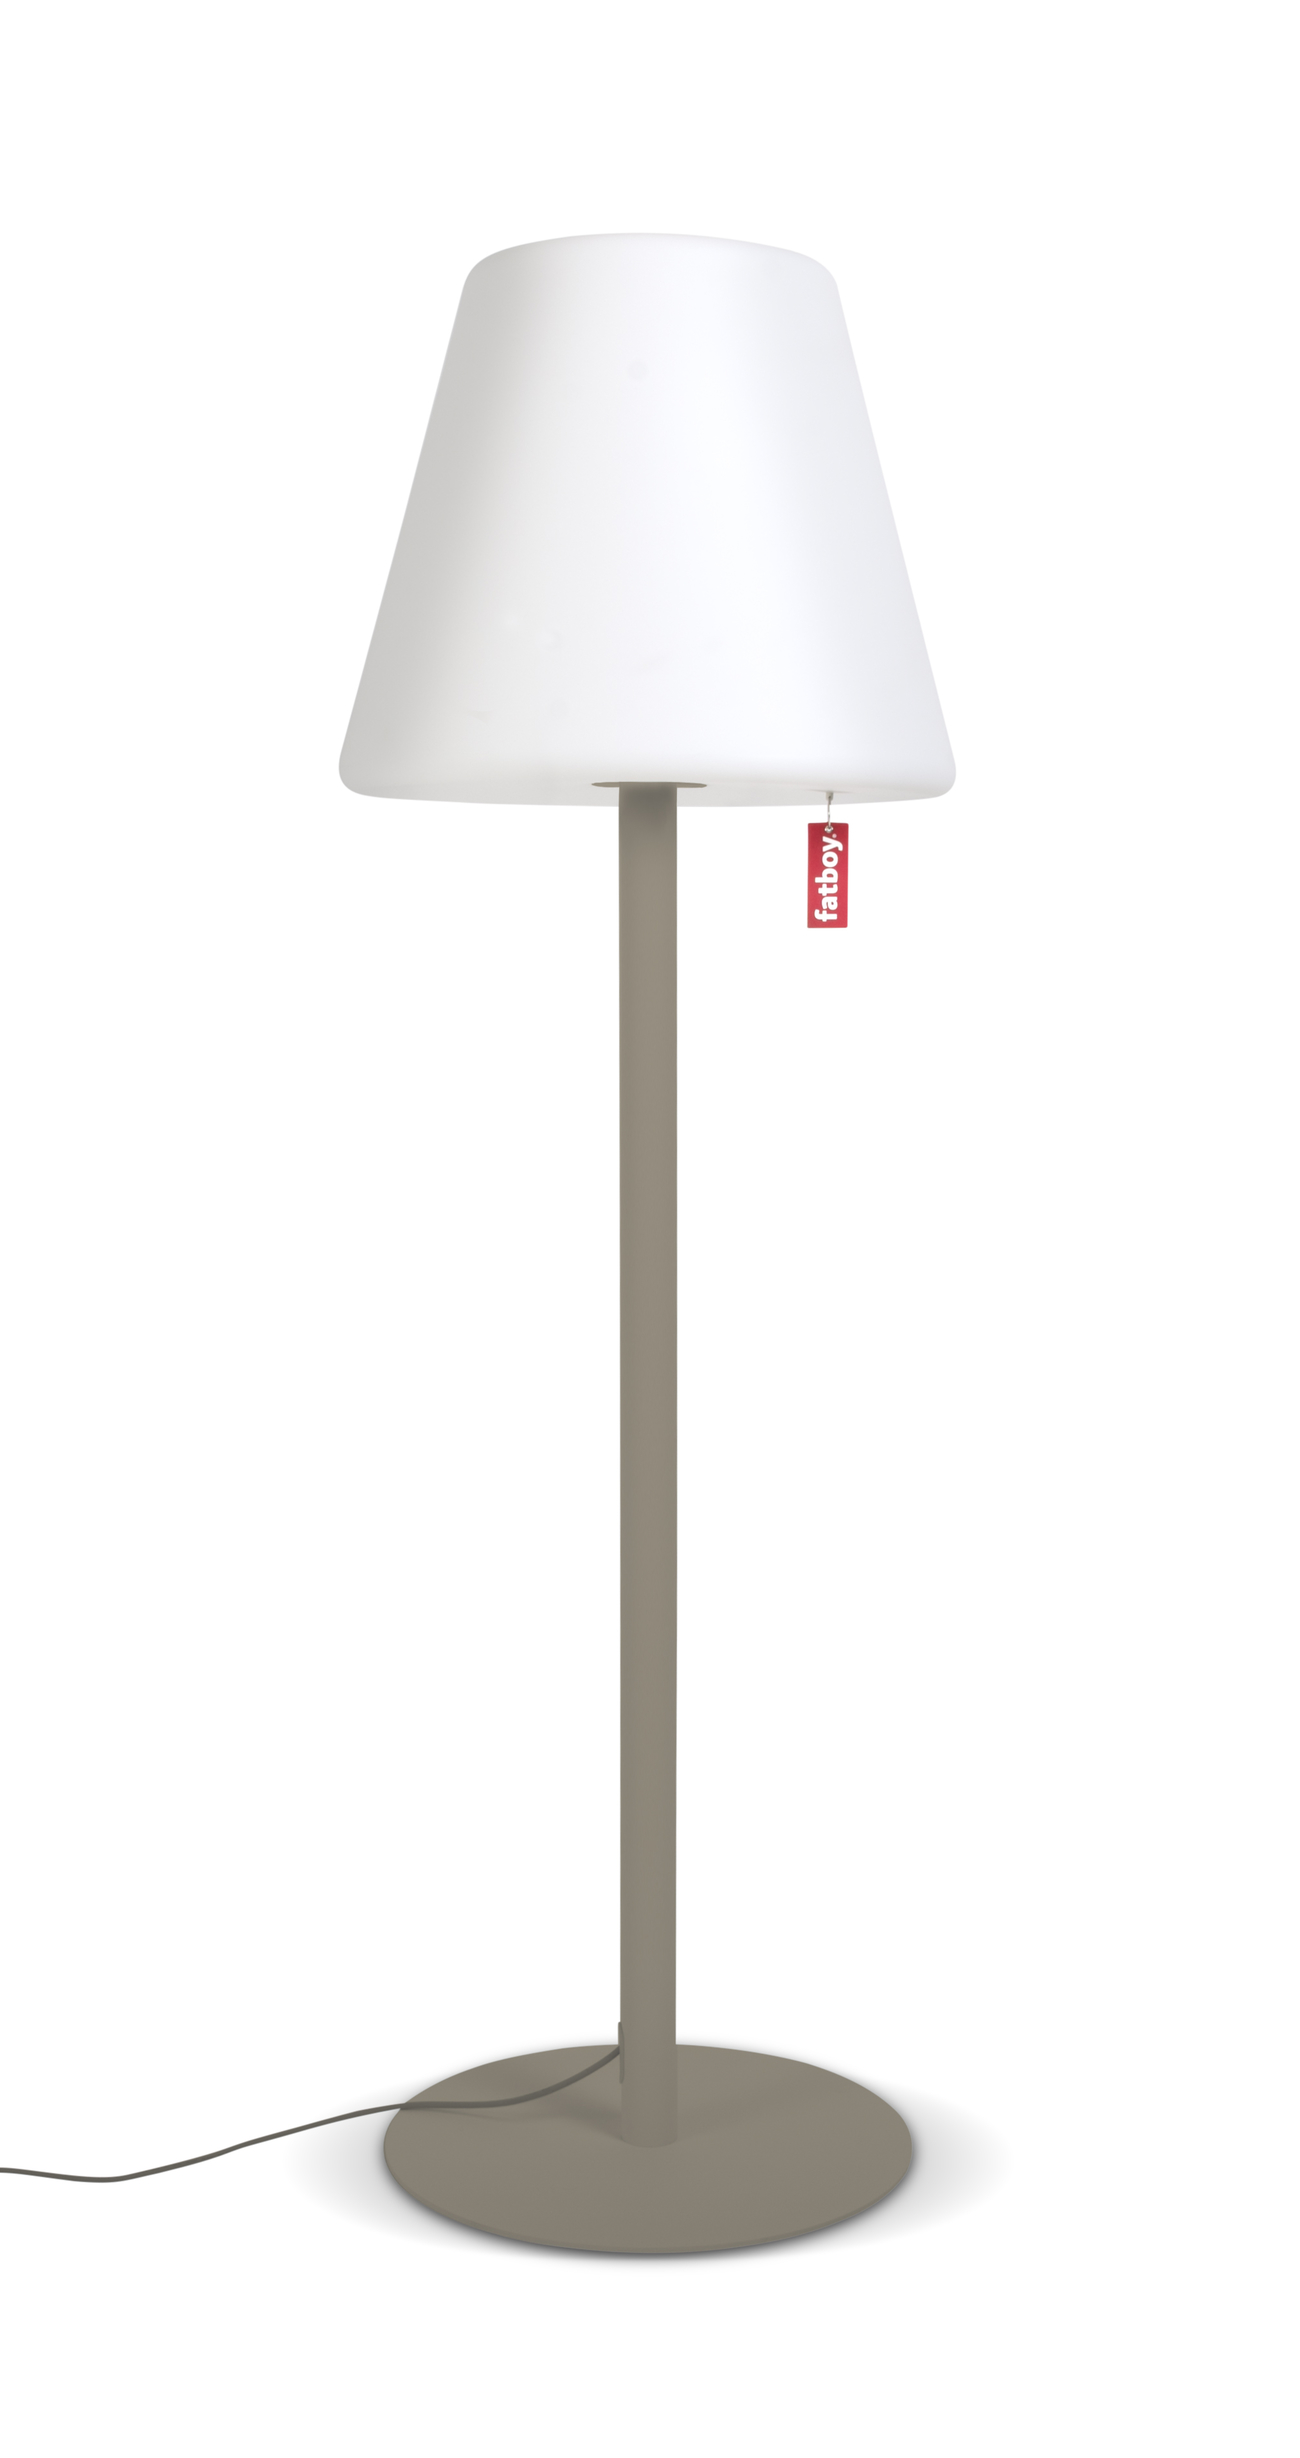 Fatboy Edison the Giant vloerlamp-Taupe